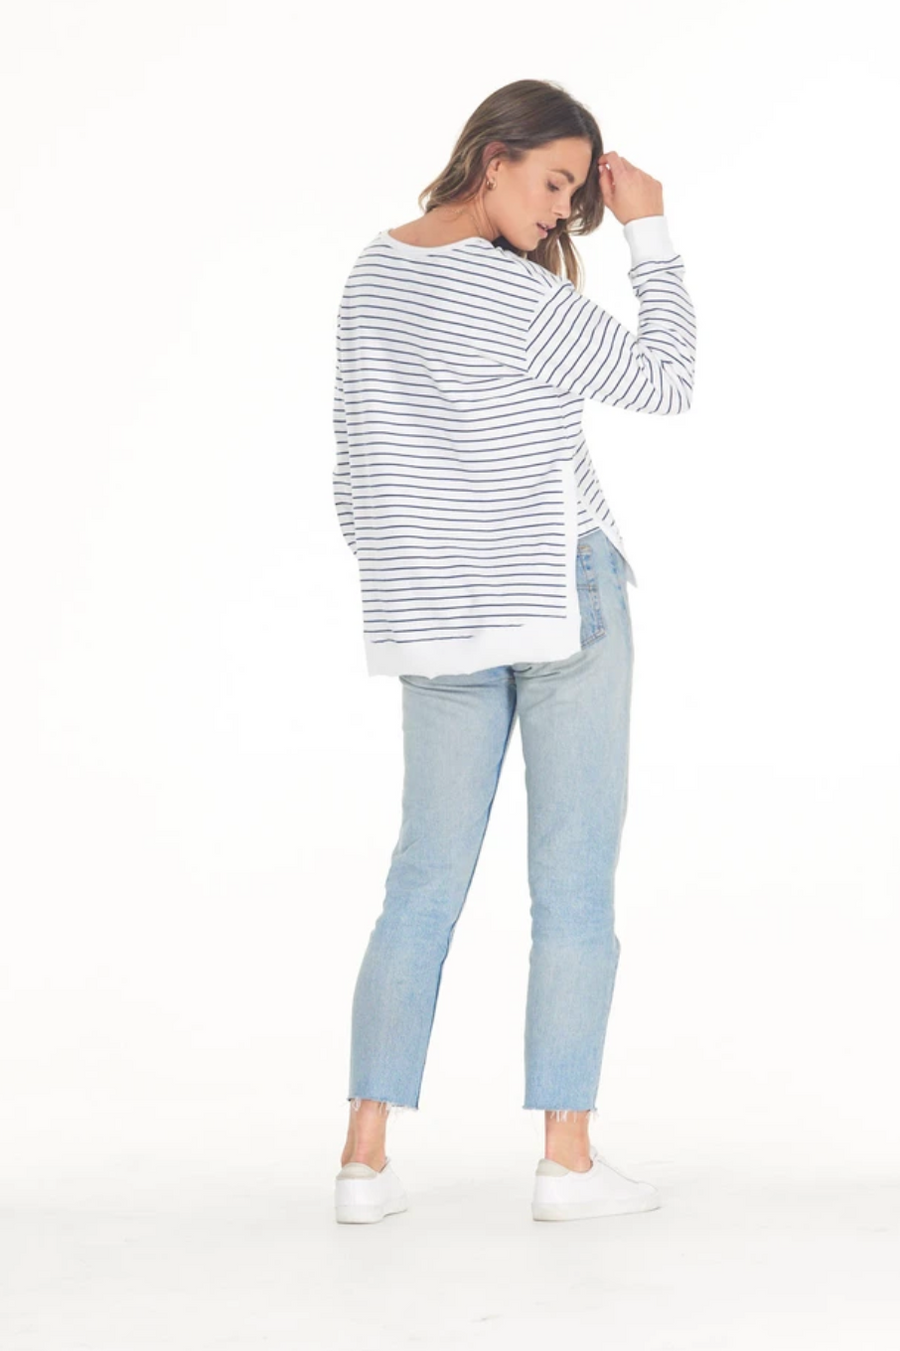 Addyson Sweater - Navy Stripe